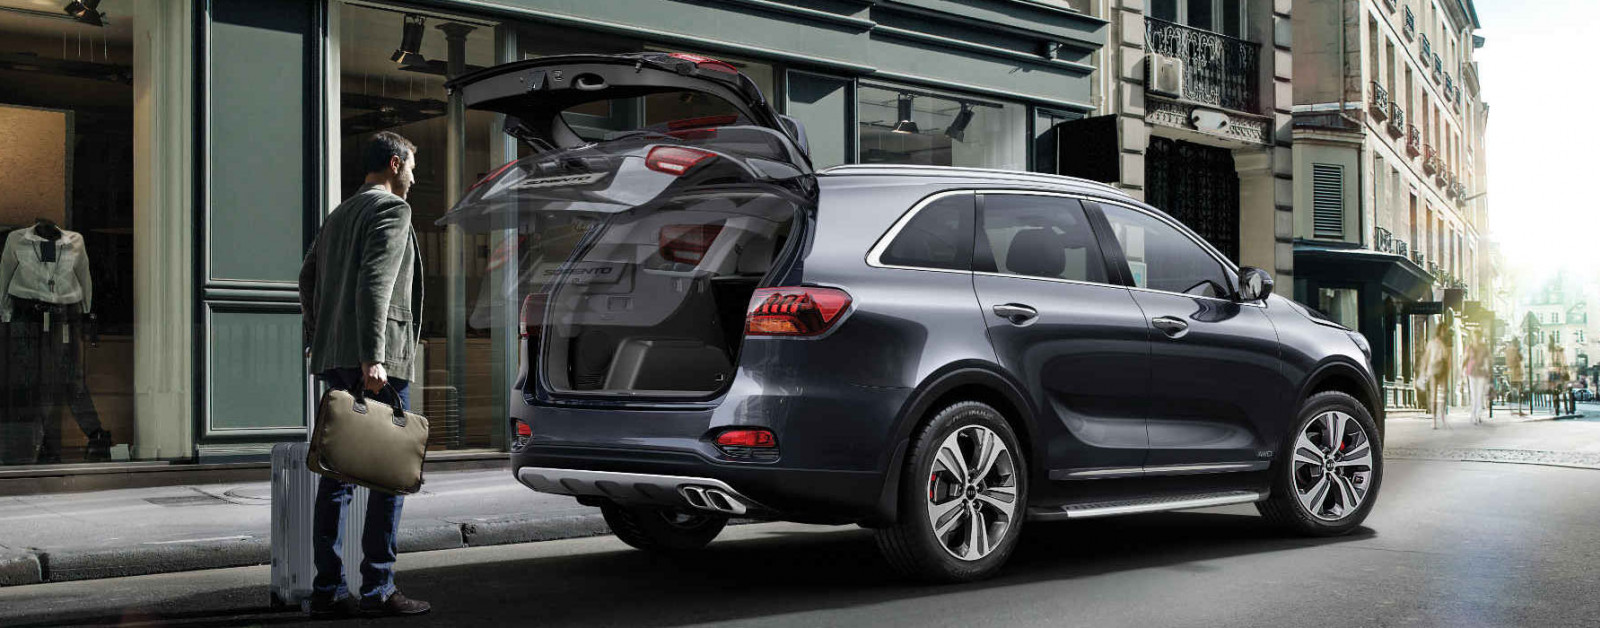 New Kia Sorento For Sale In Wollongong Gateway Accessories Strong From The Inside Out Comes With A Matrix Of Passive And Active Safety Systems All Round Protection Including Extensive Use